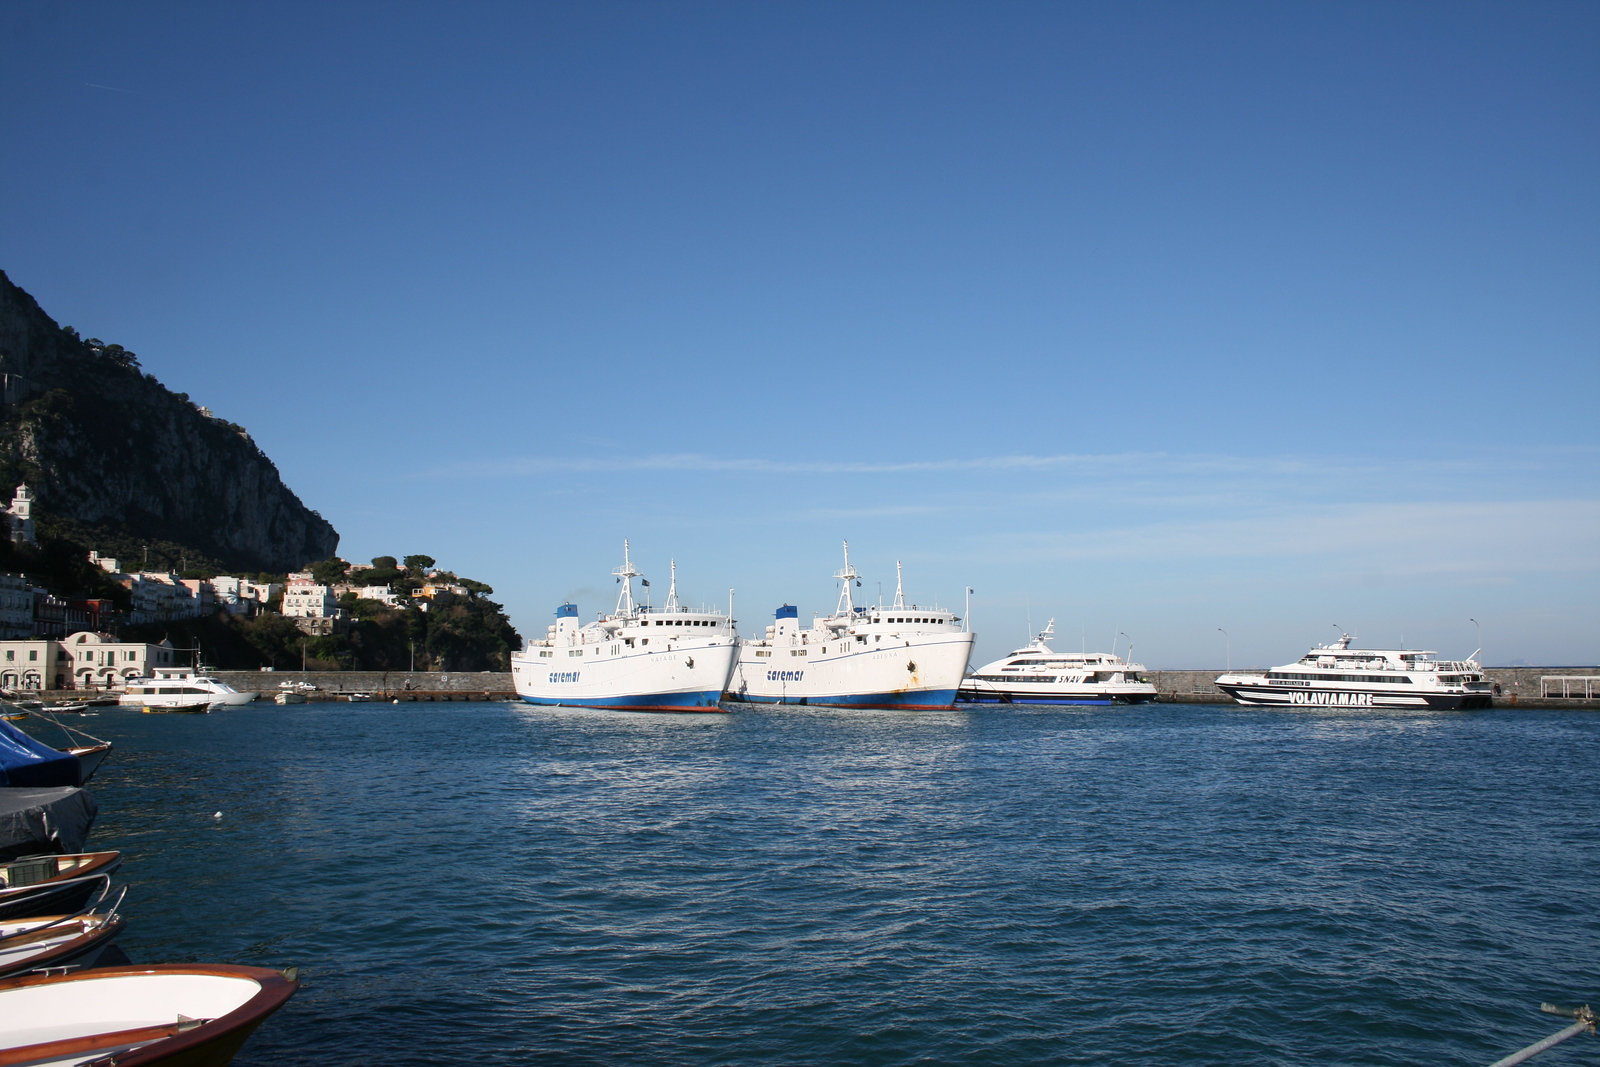 2011 - Sisterships NAIADE and ADEONA together in the small port of Capri. It 's the first time in many years this has happened for a long time, due to works on fast ferries that usually sail on these routes.